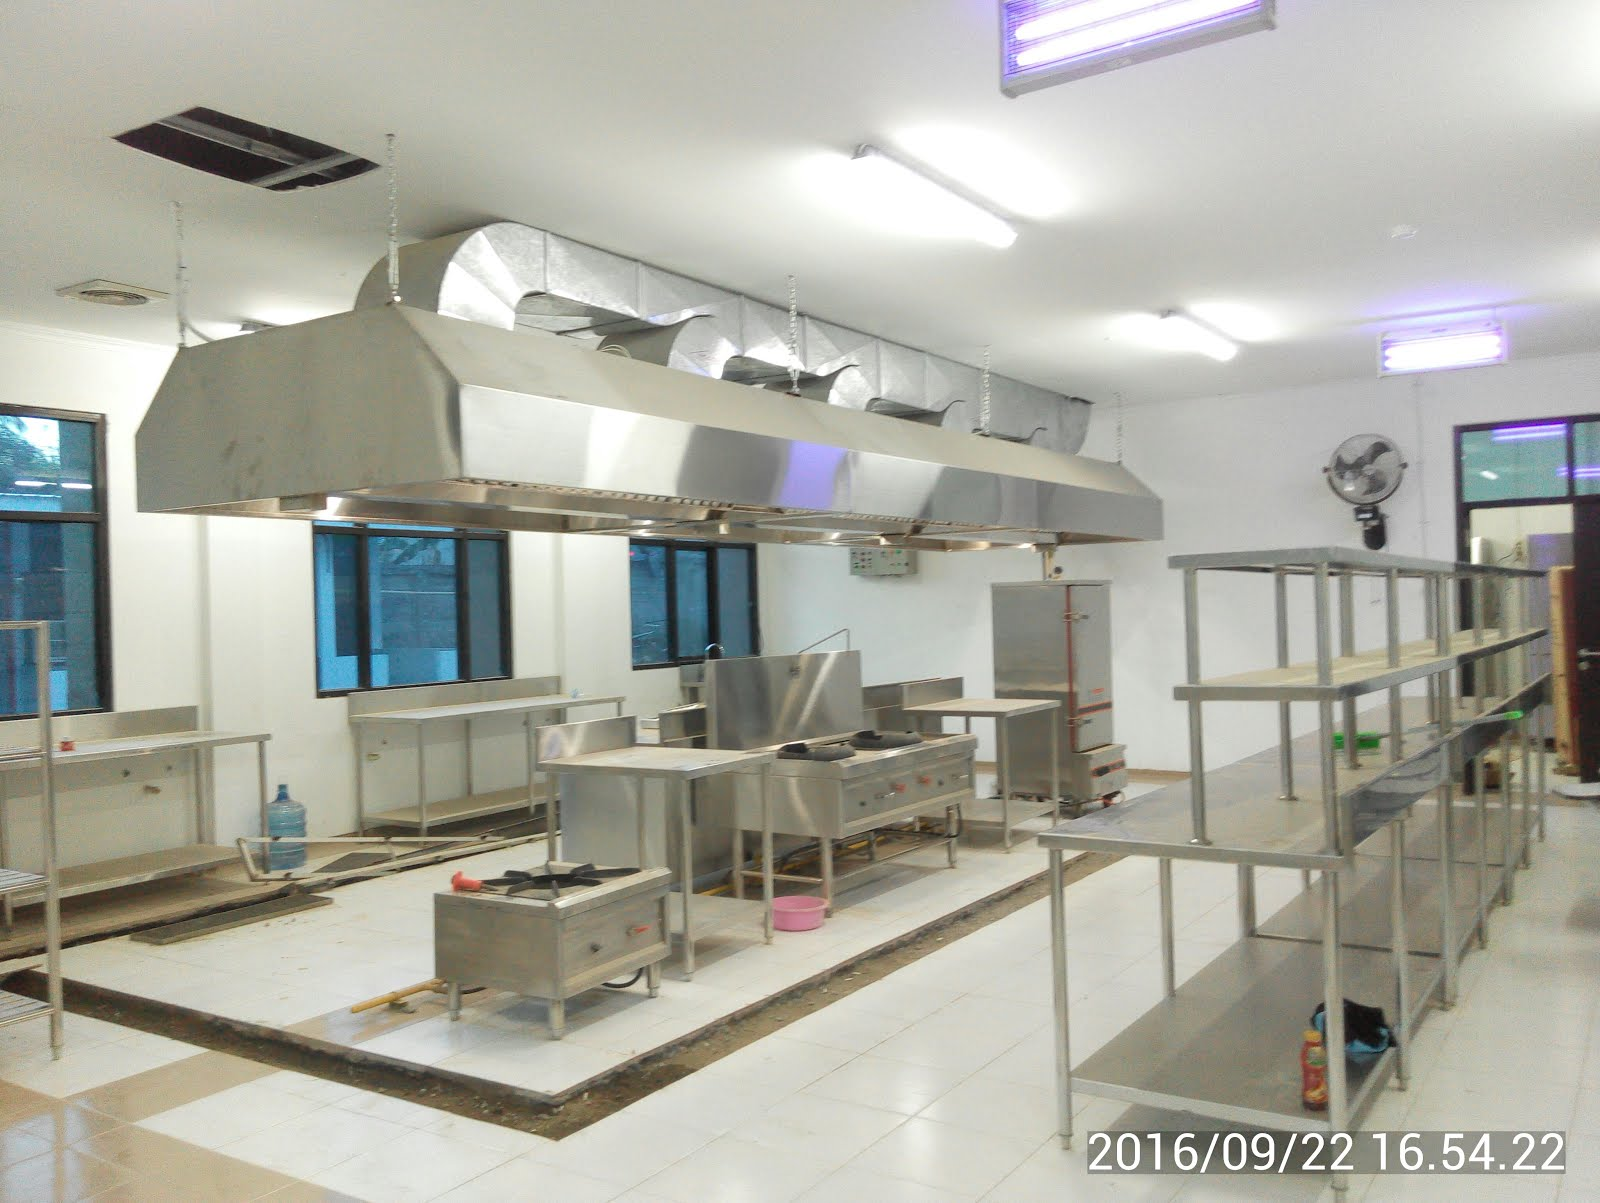 Jual Kitchen Set Stainless Restoran Equipment Cafe Rumah Sakit Hotel Tangga Ukuran Custom